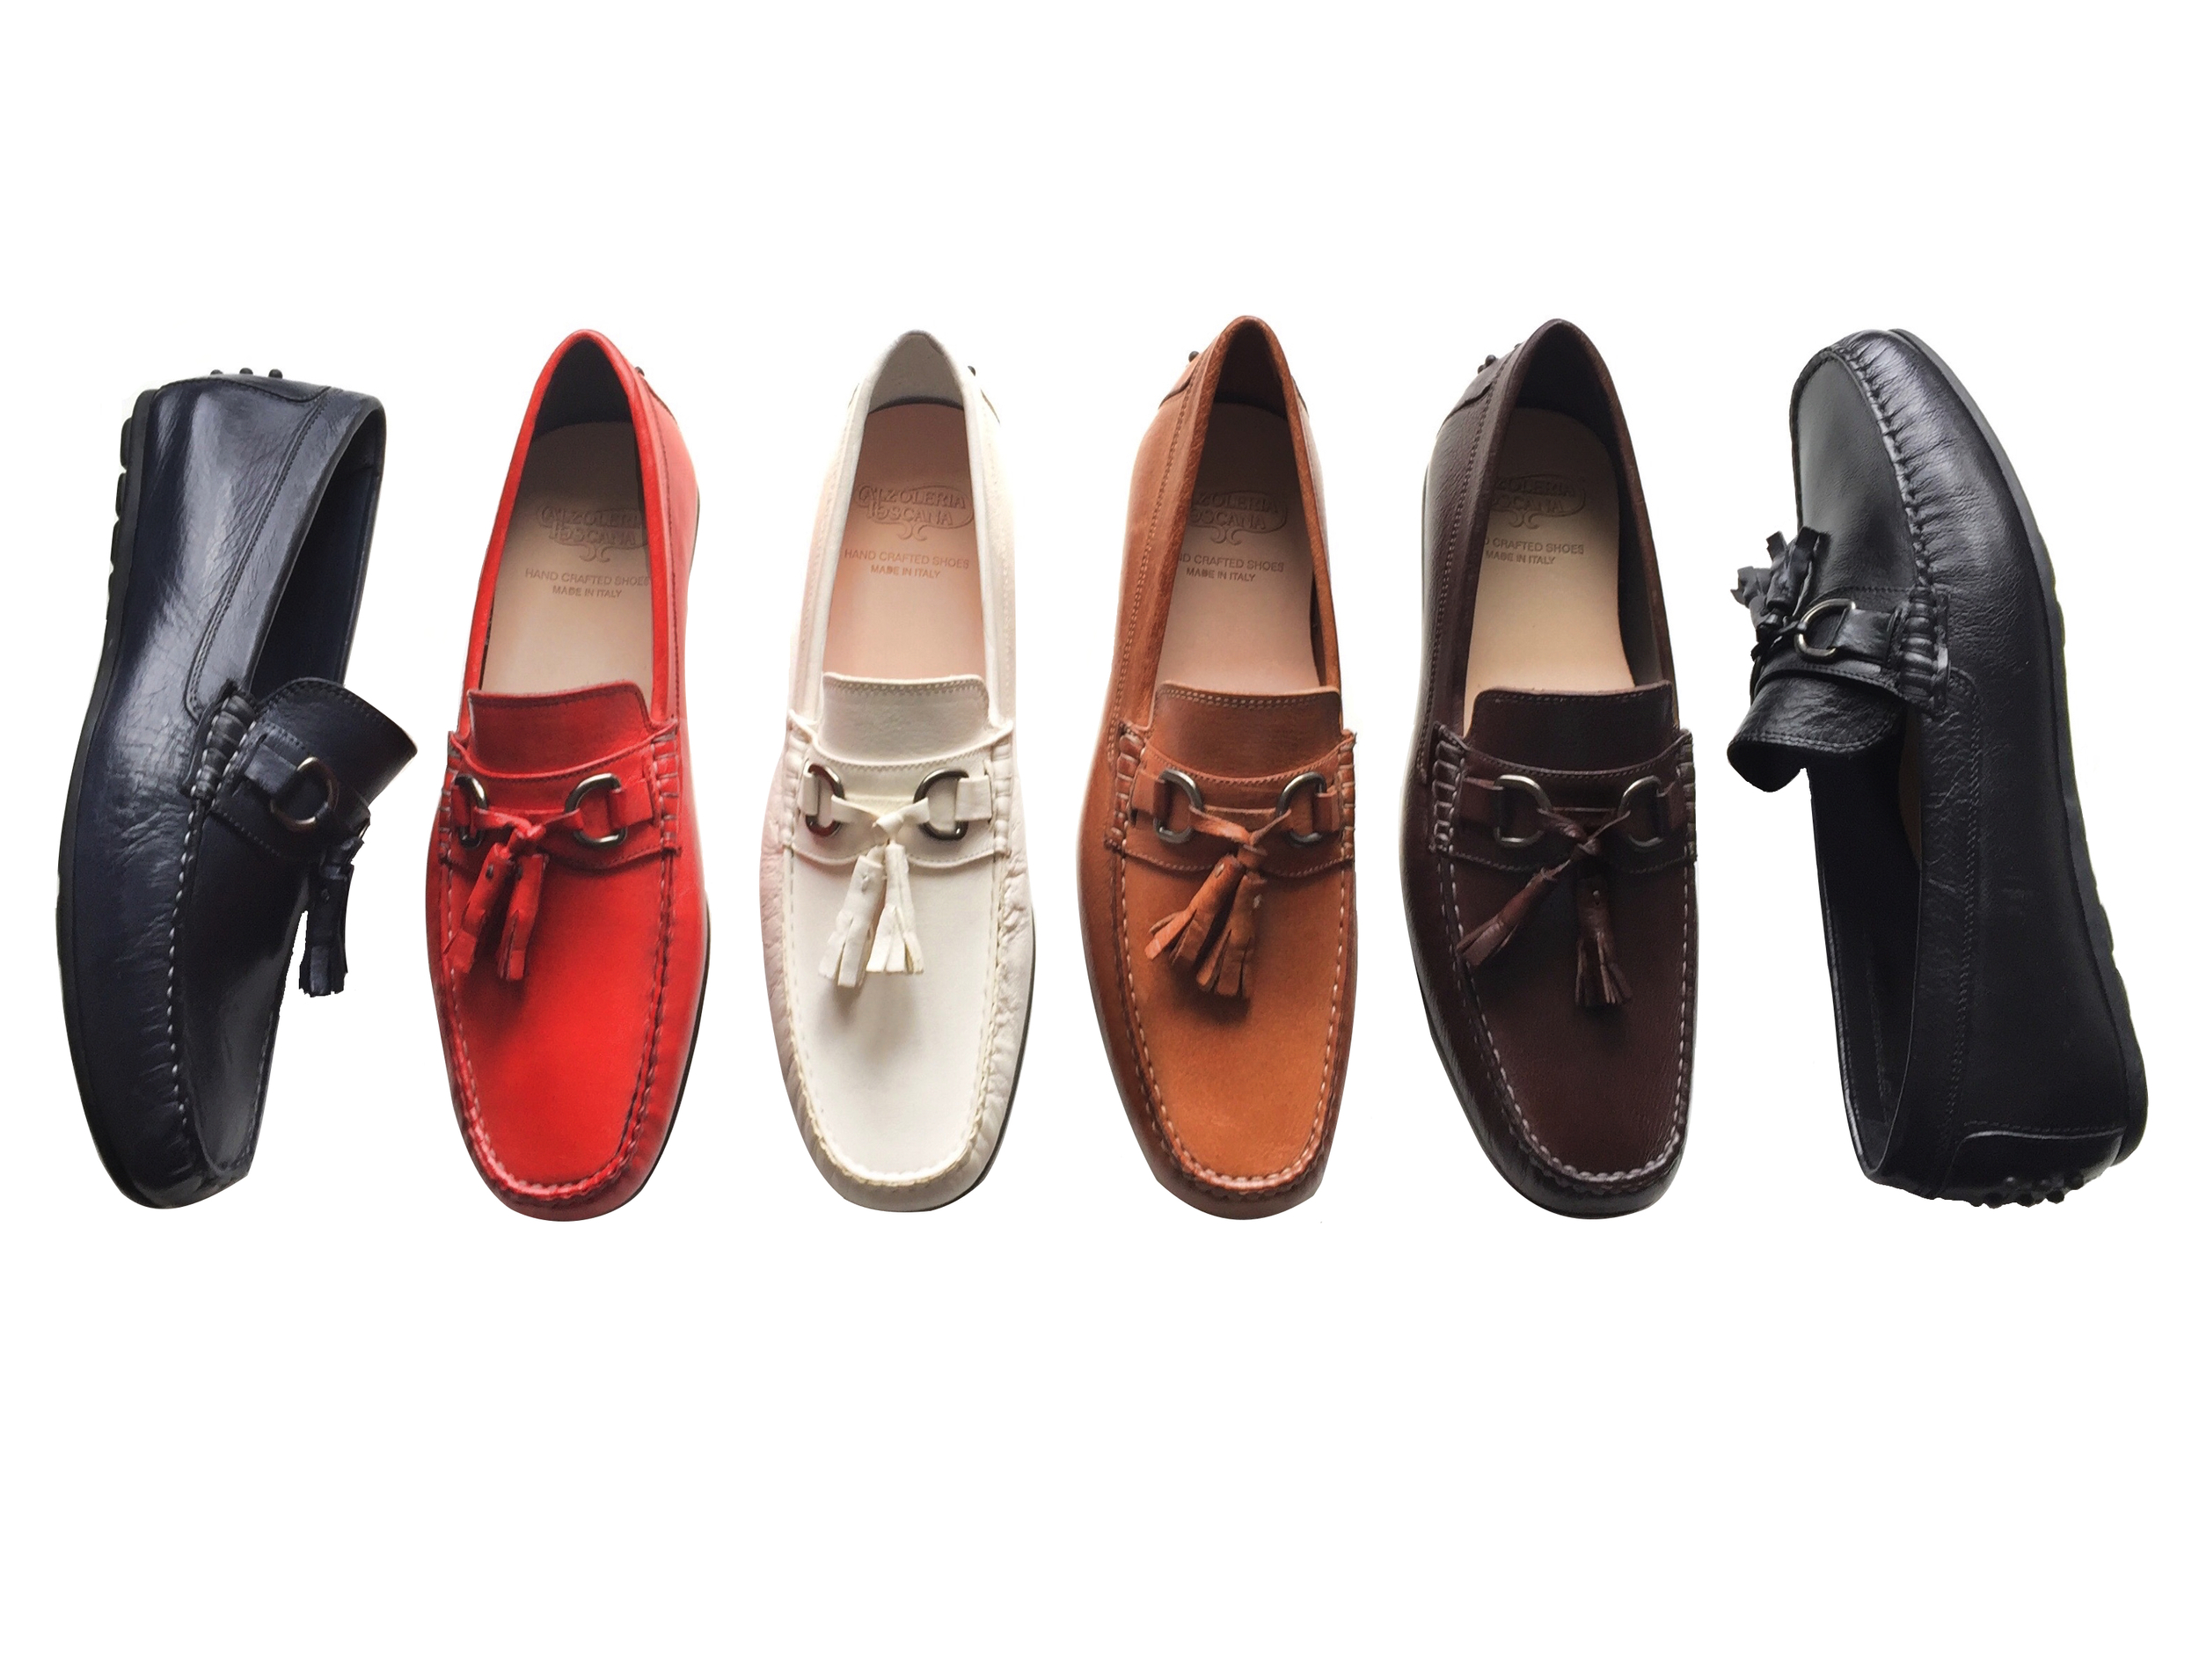 Style # 2907: Blue, Red, White, Brick, Brown, Black   Buffcalf Tassel Slip on feat. rubber bottom  Sizes available:   41 to 47 EU, full sizes only